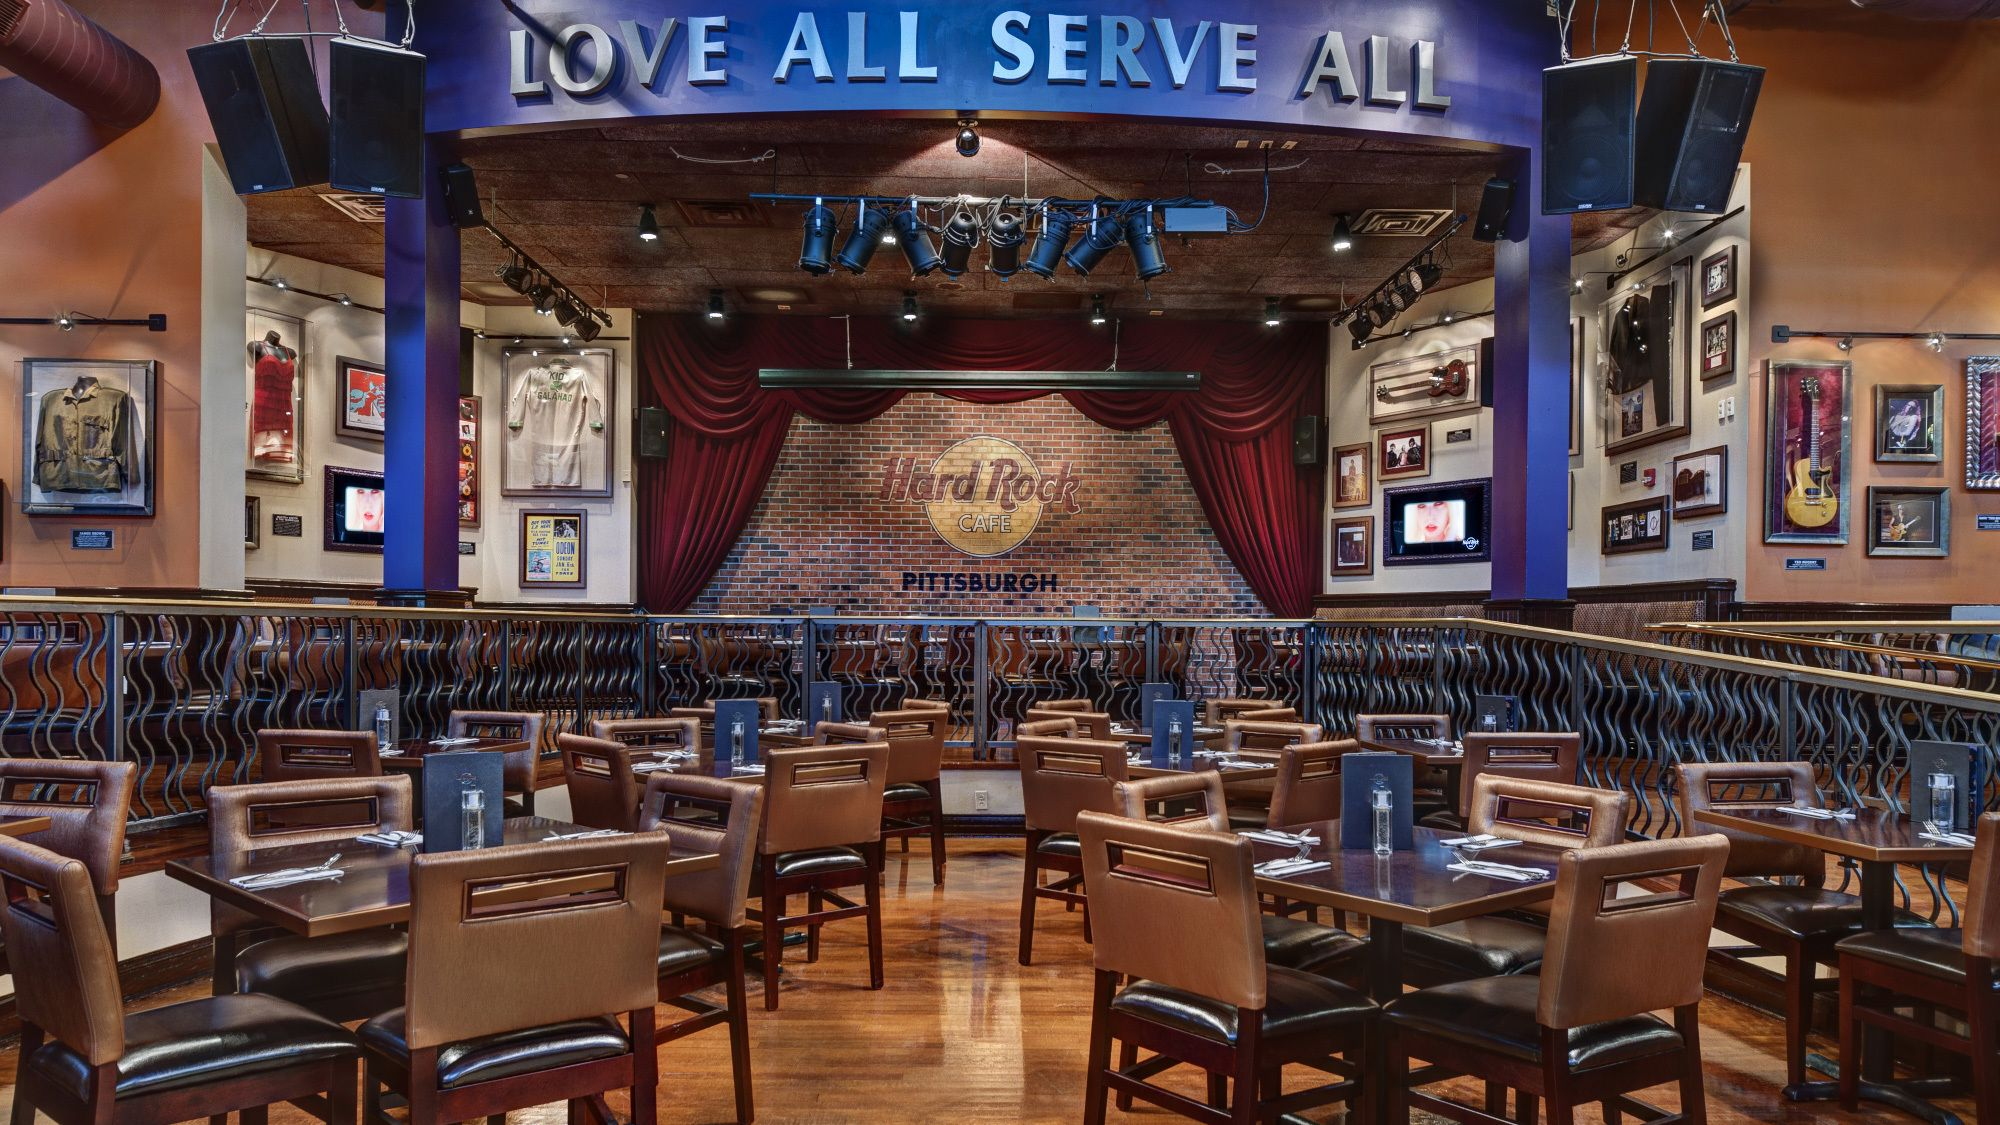 Dining at Hard Rock Cafe Pittsburgh with Priority Seating